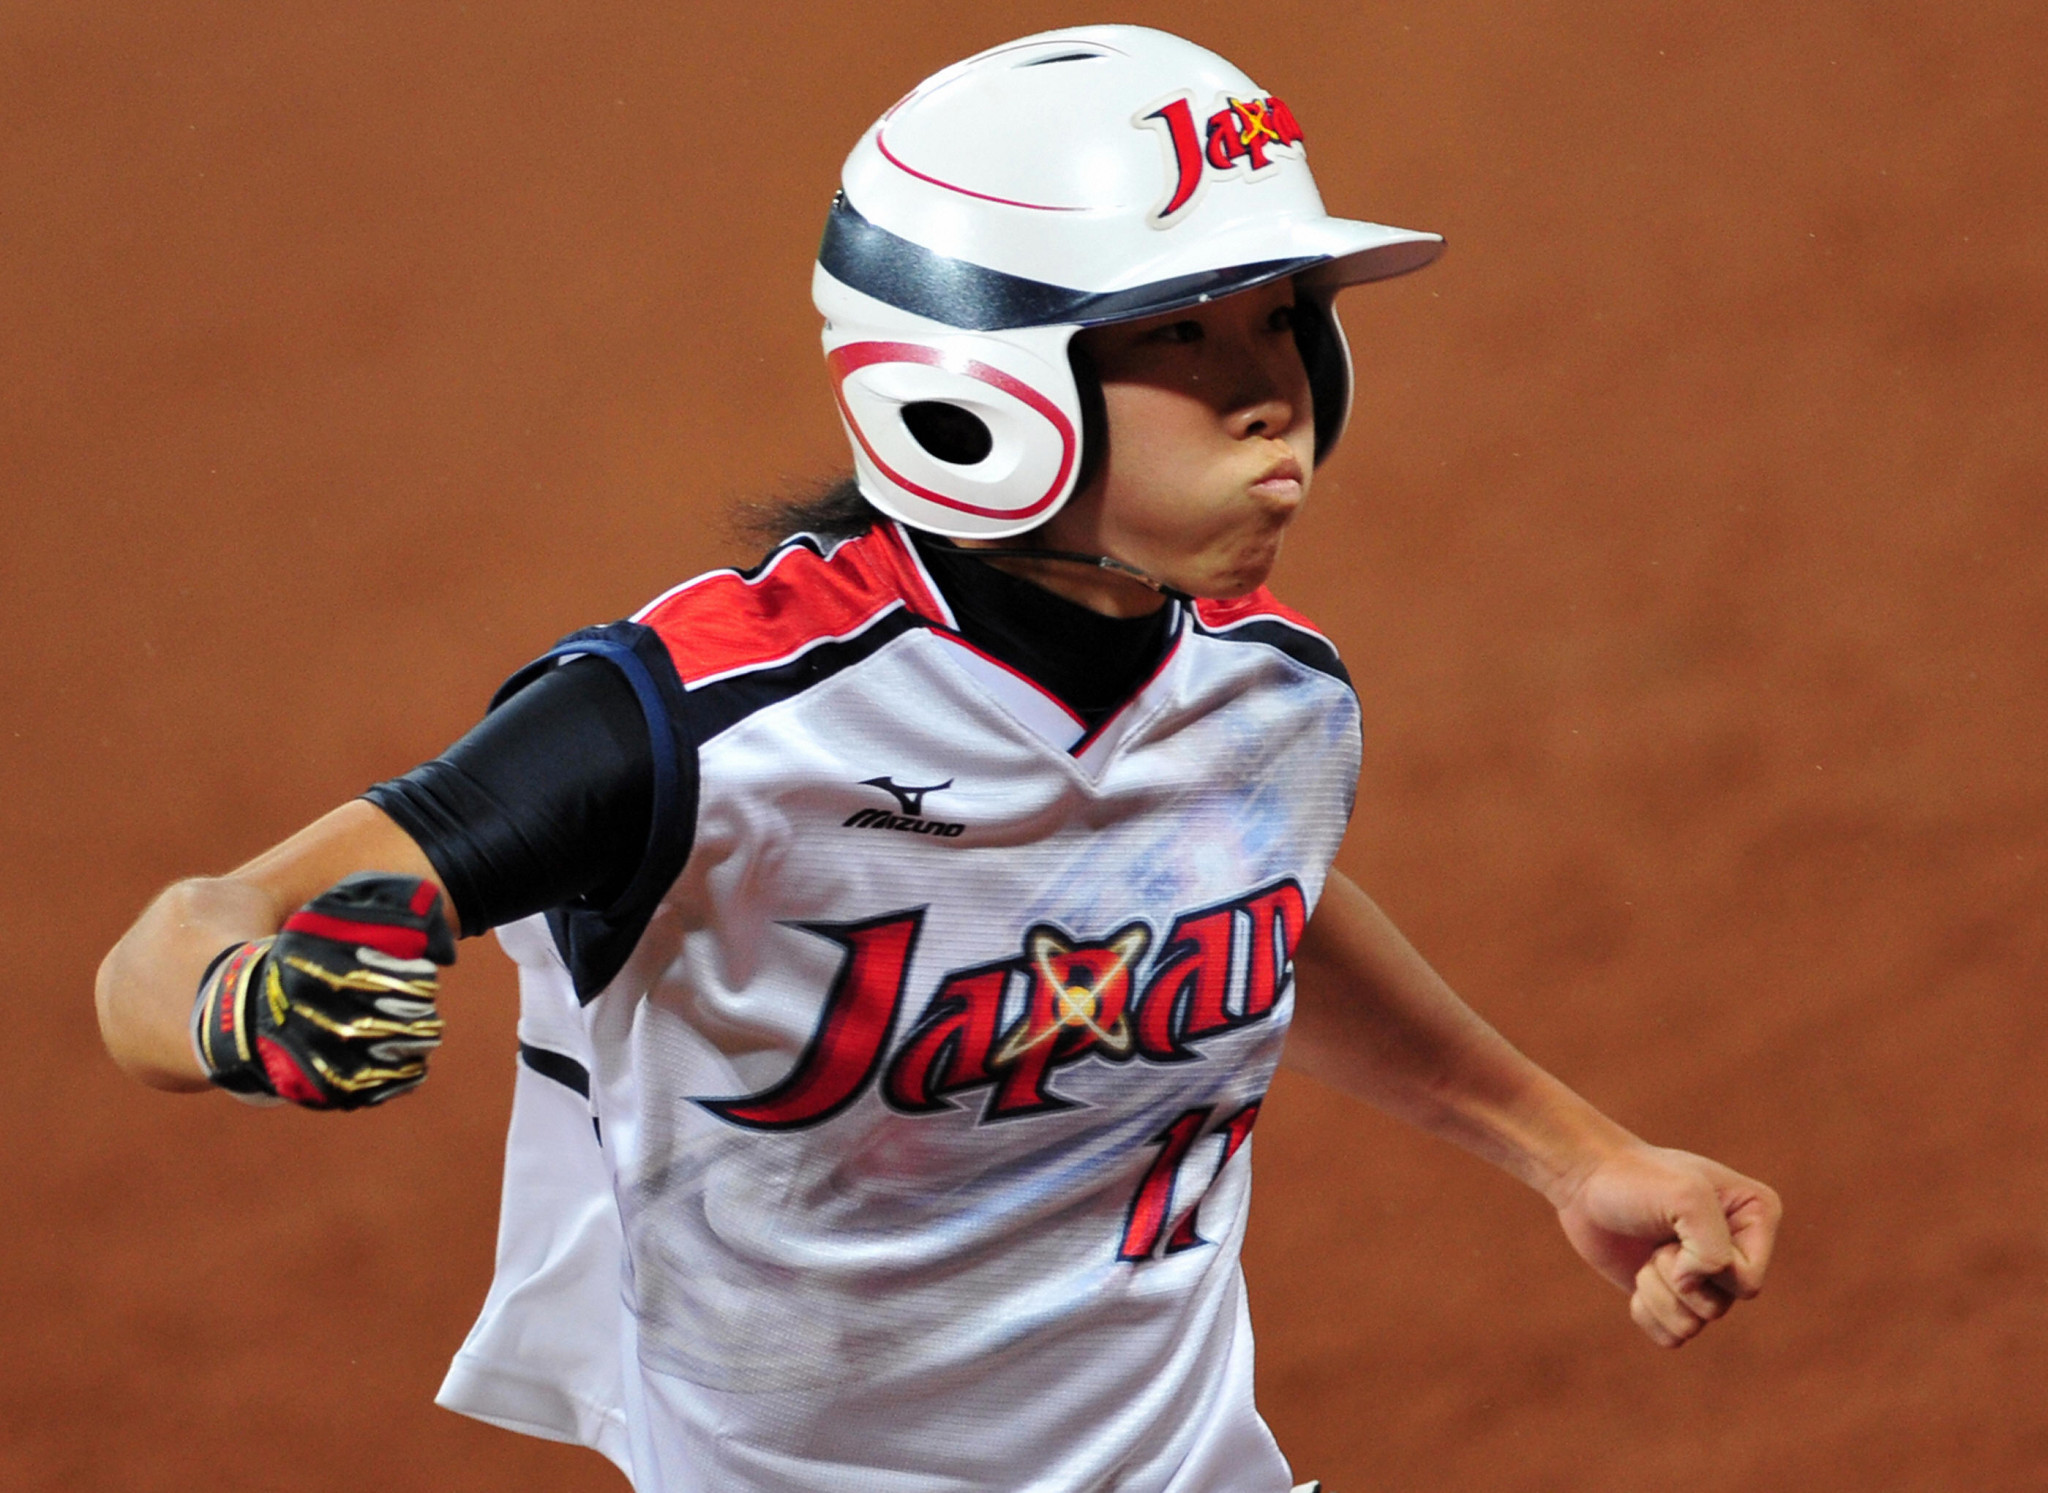 Eri Yamada earned Olympic softball gold with Japan at Beijing 2008 ©Getty Images